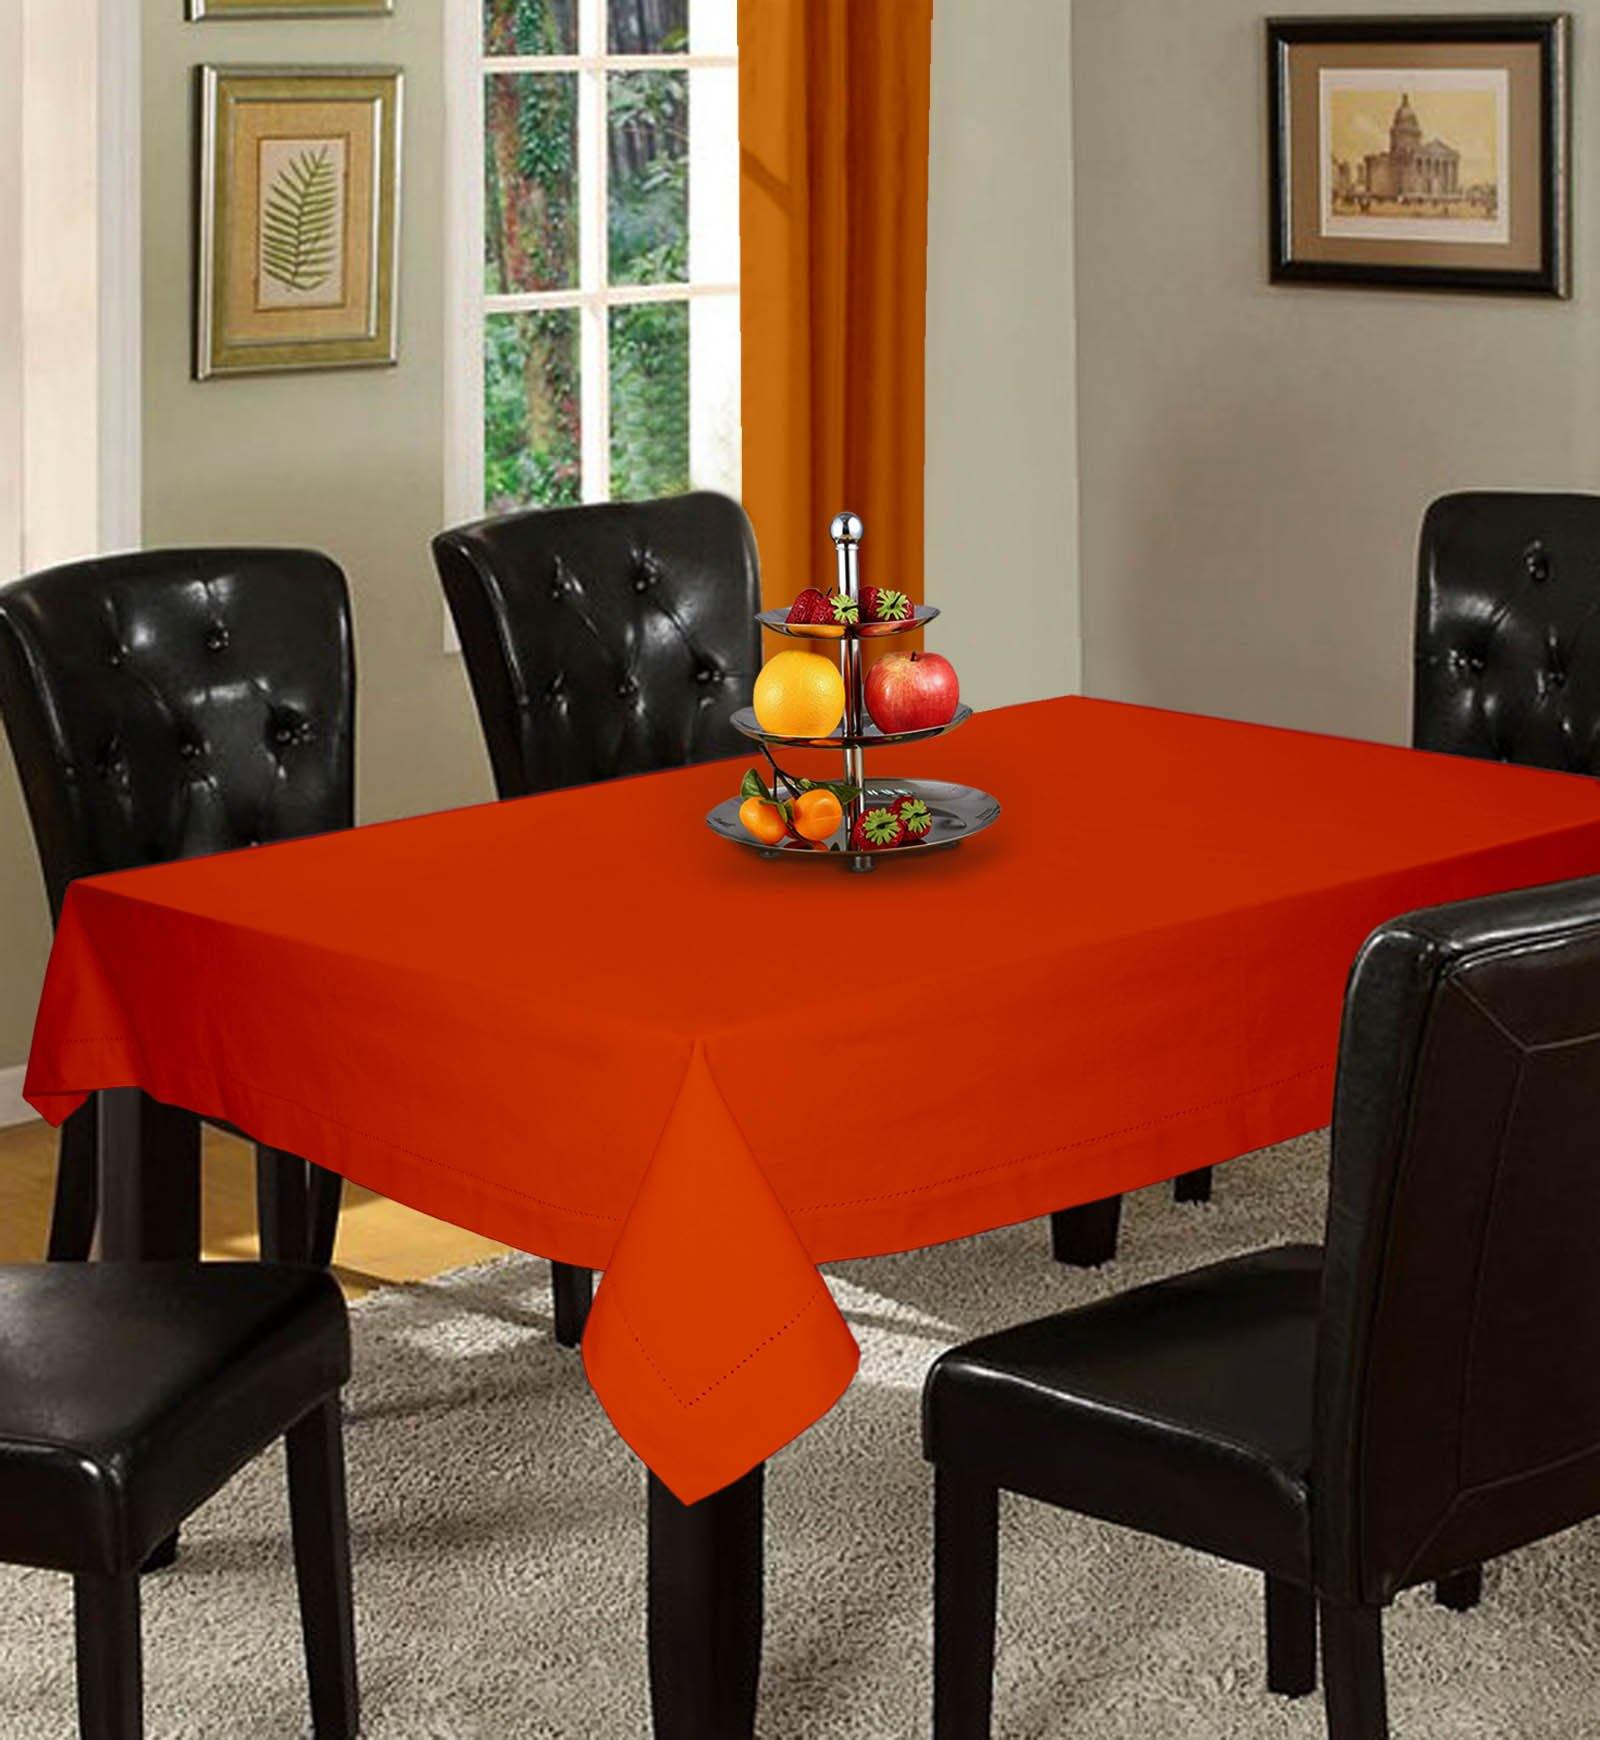 Lushomes Plain Red Wood Holestitch Cotton for 12 Seater Orange Table Covers - Lushomes